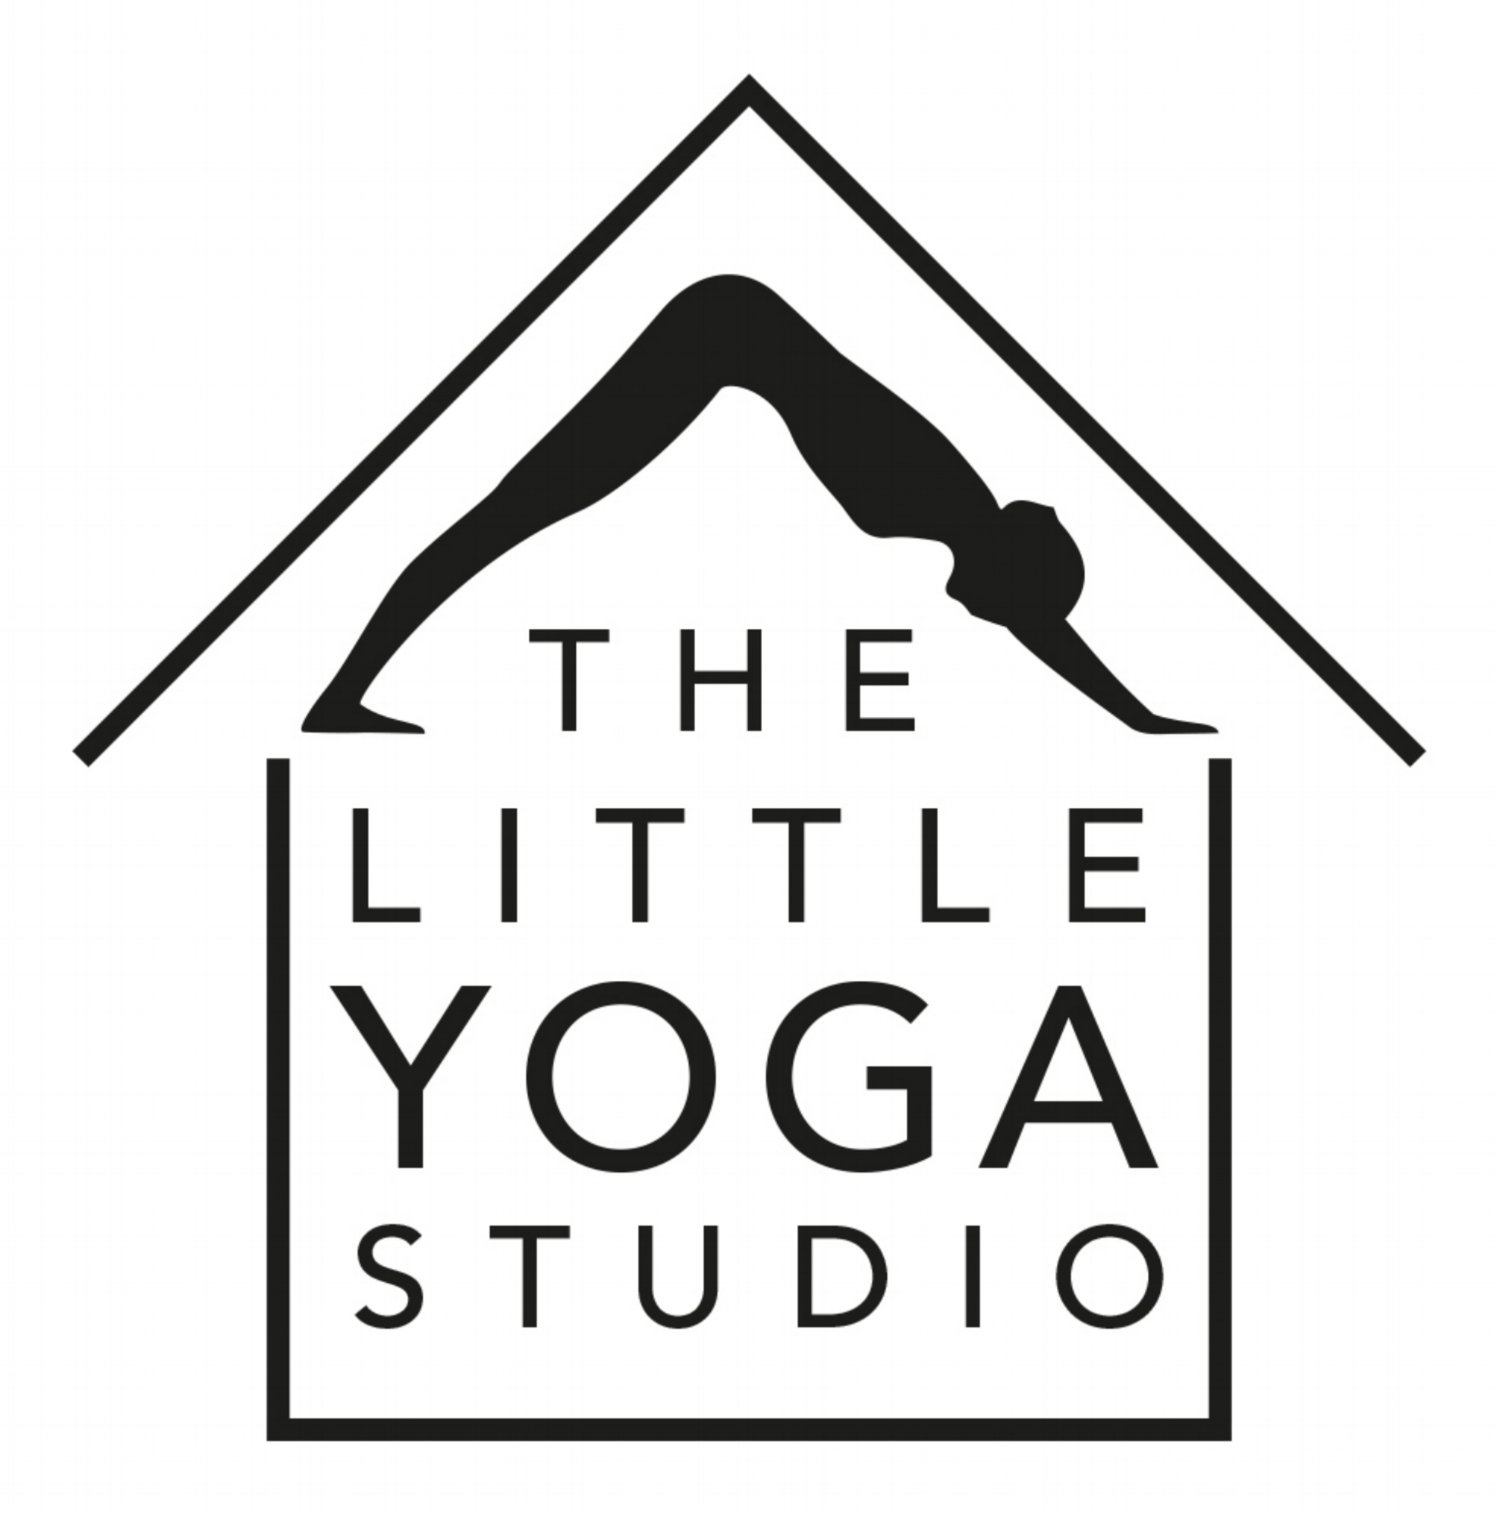 The Little Yoga Studio London